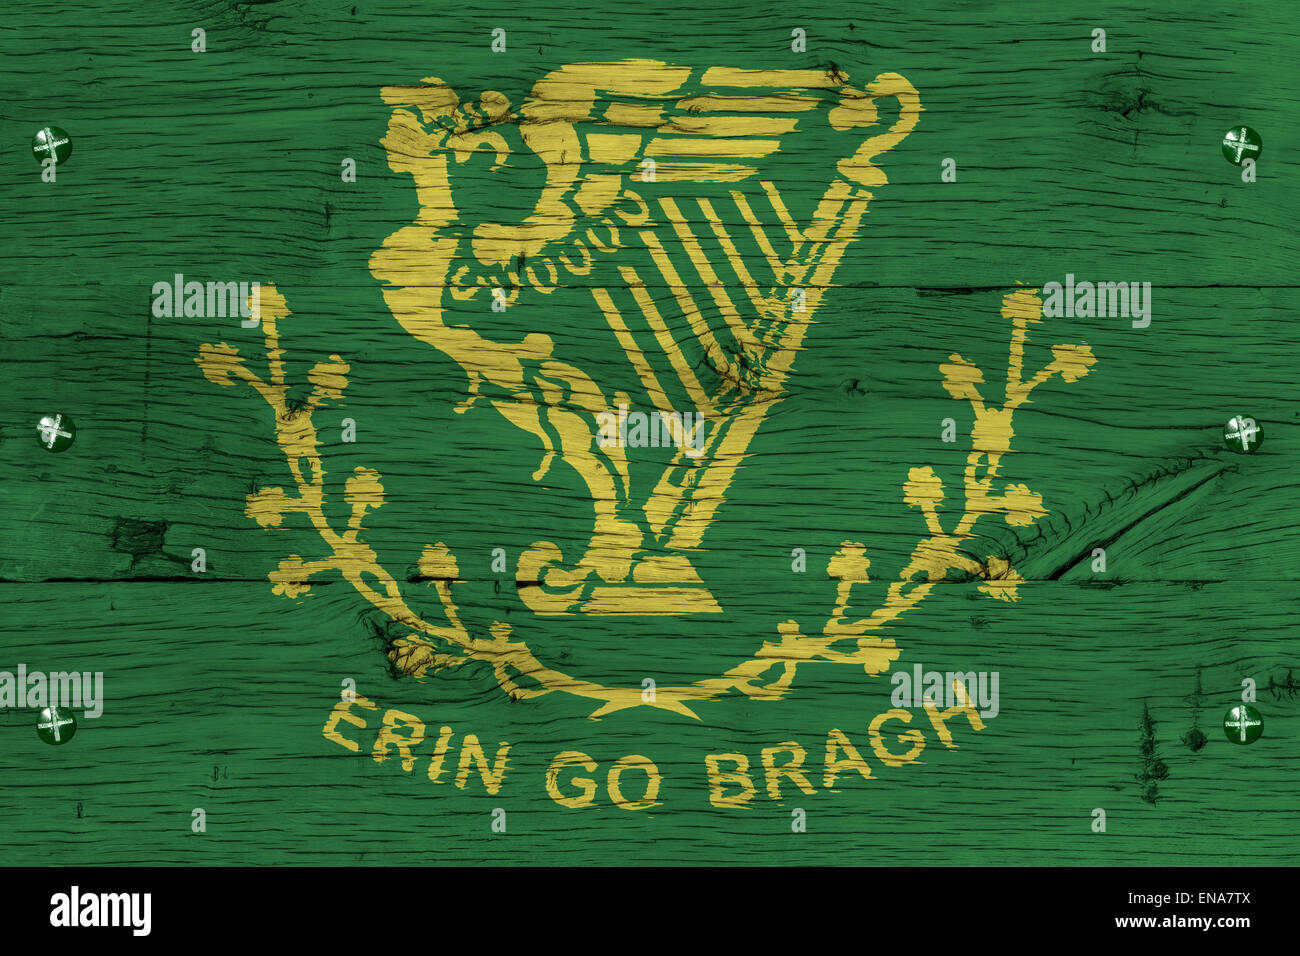 Erin go bragh irish ireland flag painting is colorful on wood of erin go bragh irish ireland flag painting is colorful on wood of old train carriage fastened by screws or bolts m4hsunfo